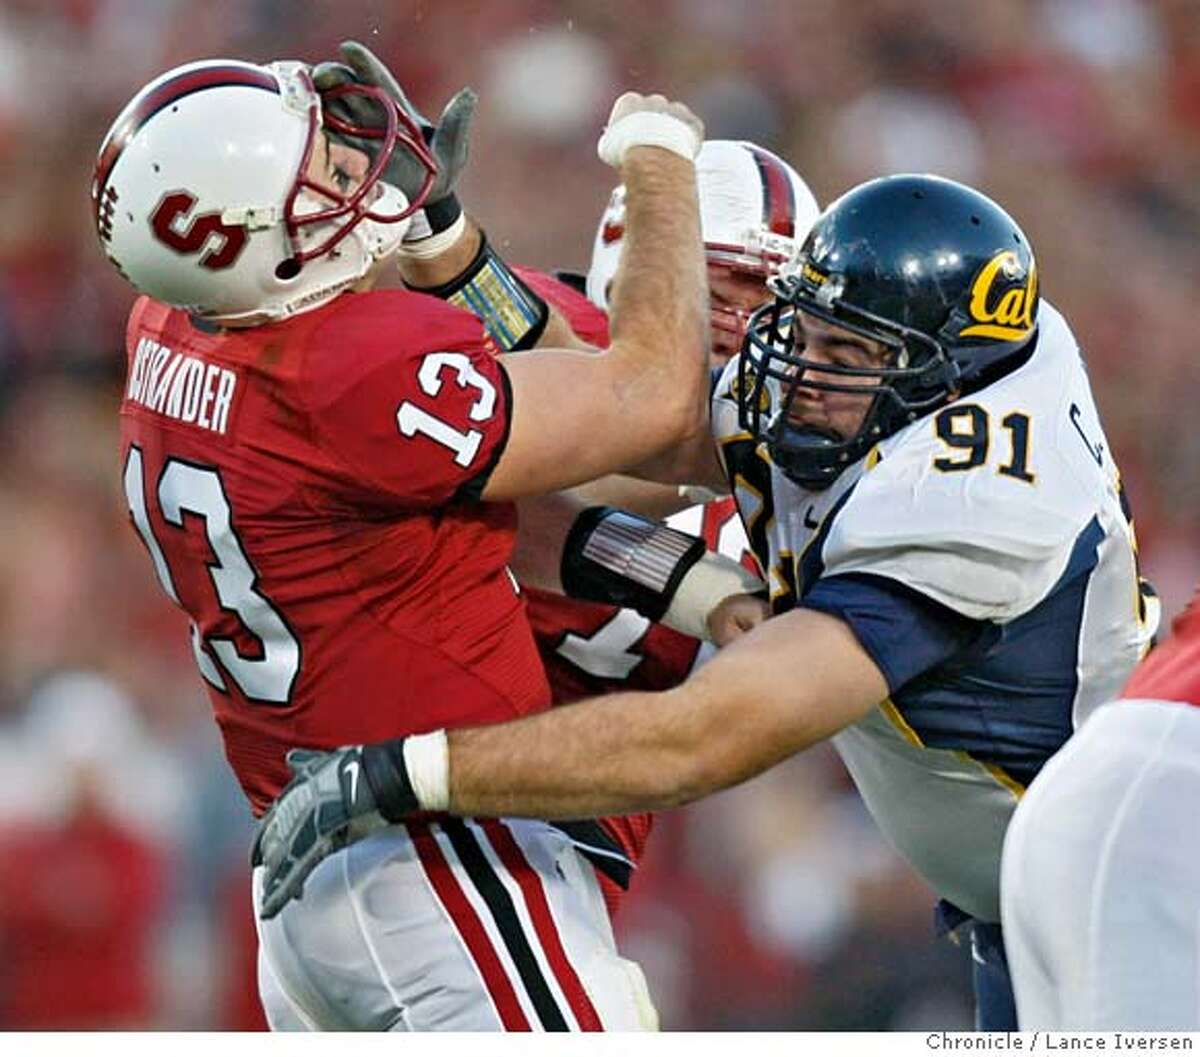 Stanford's T.C. Ostrander is hit hard by Cal's Cody Jones in first half action.CAL vs. STANFORD in the 110 annual Big Game in Stanford Stadium. Lance Iversen/San Francisco Chronicle (cq) SUBJECT 12/01/07,in PALO ALTO Ca.